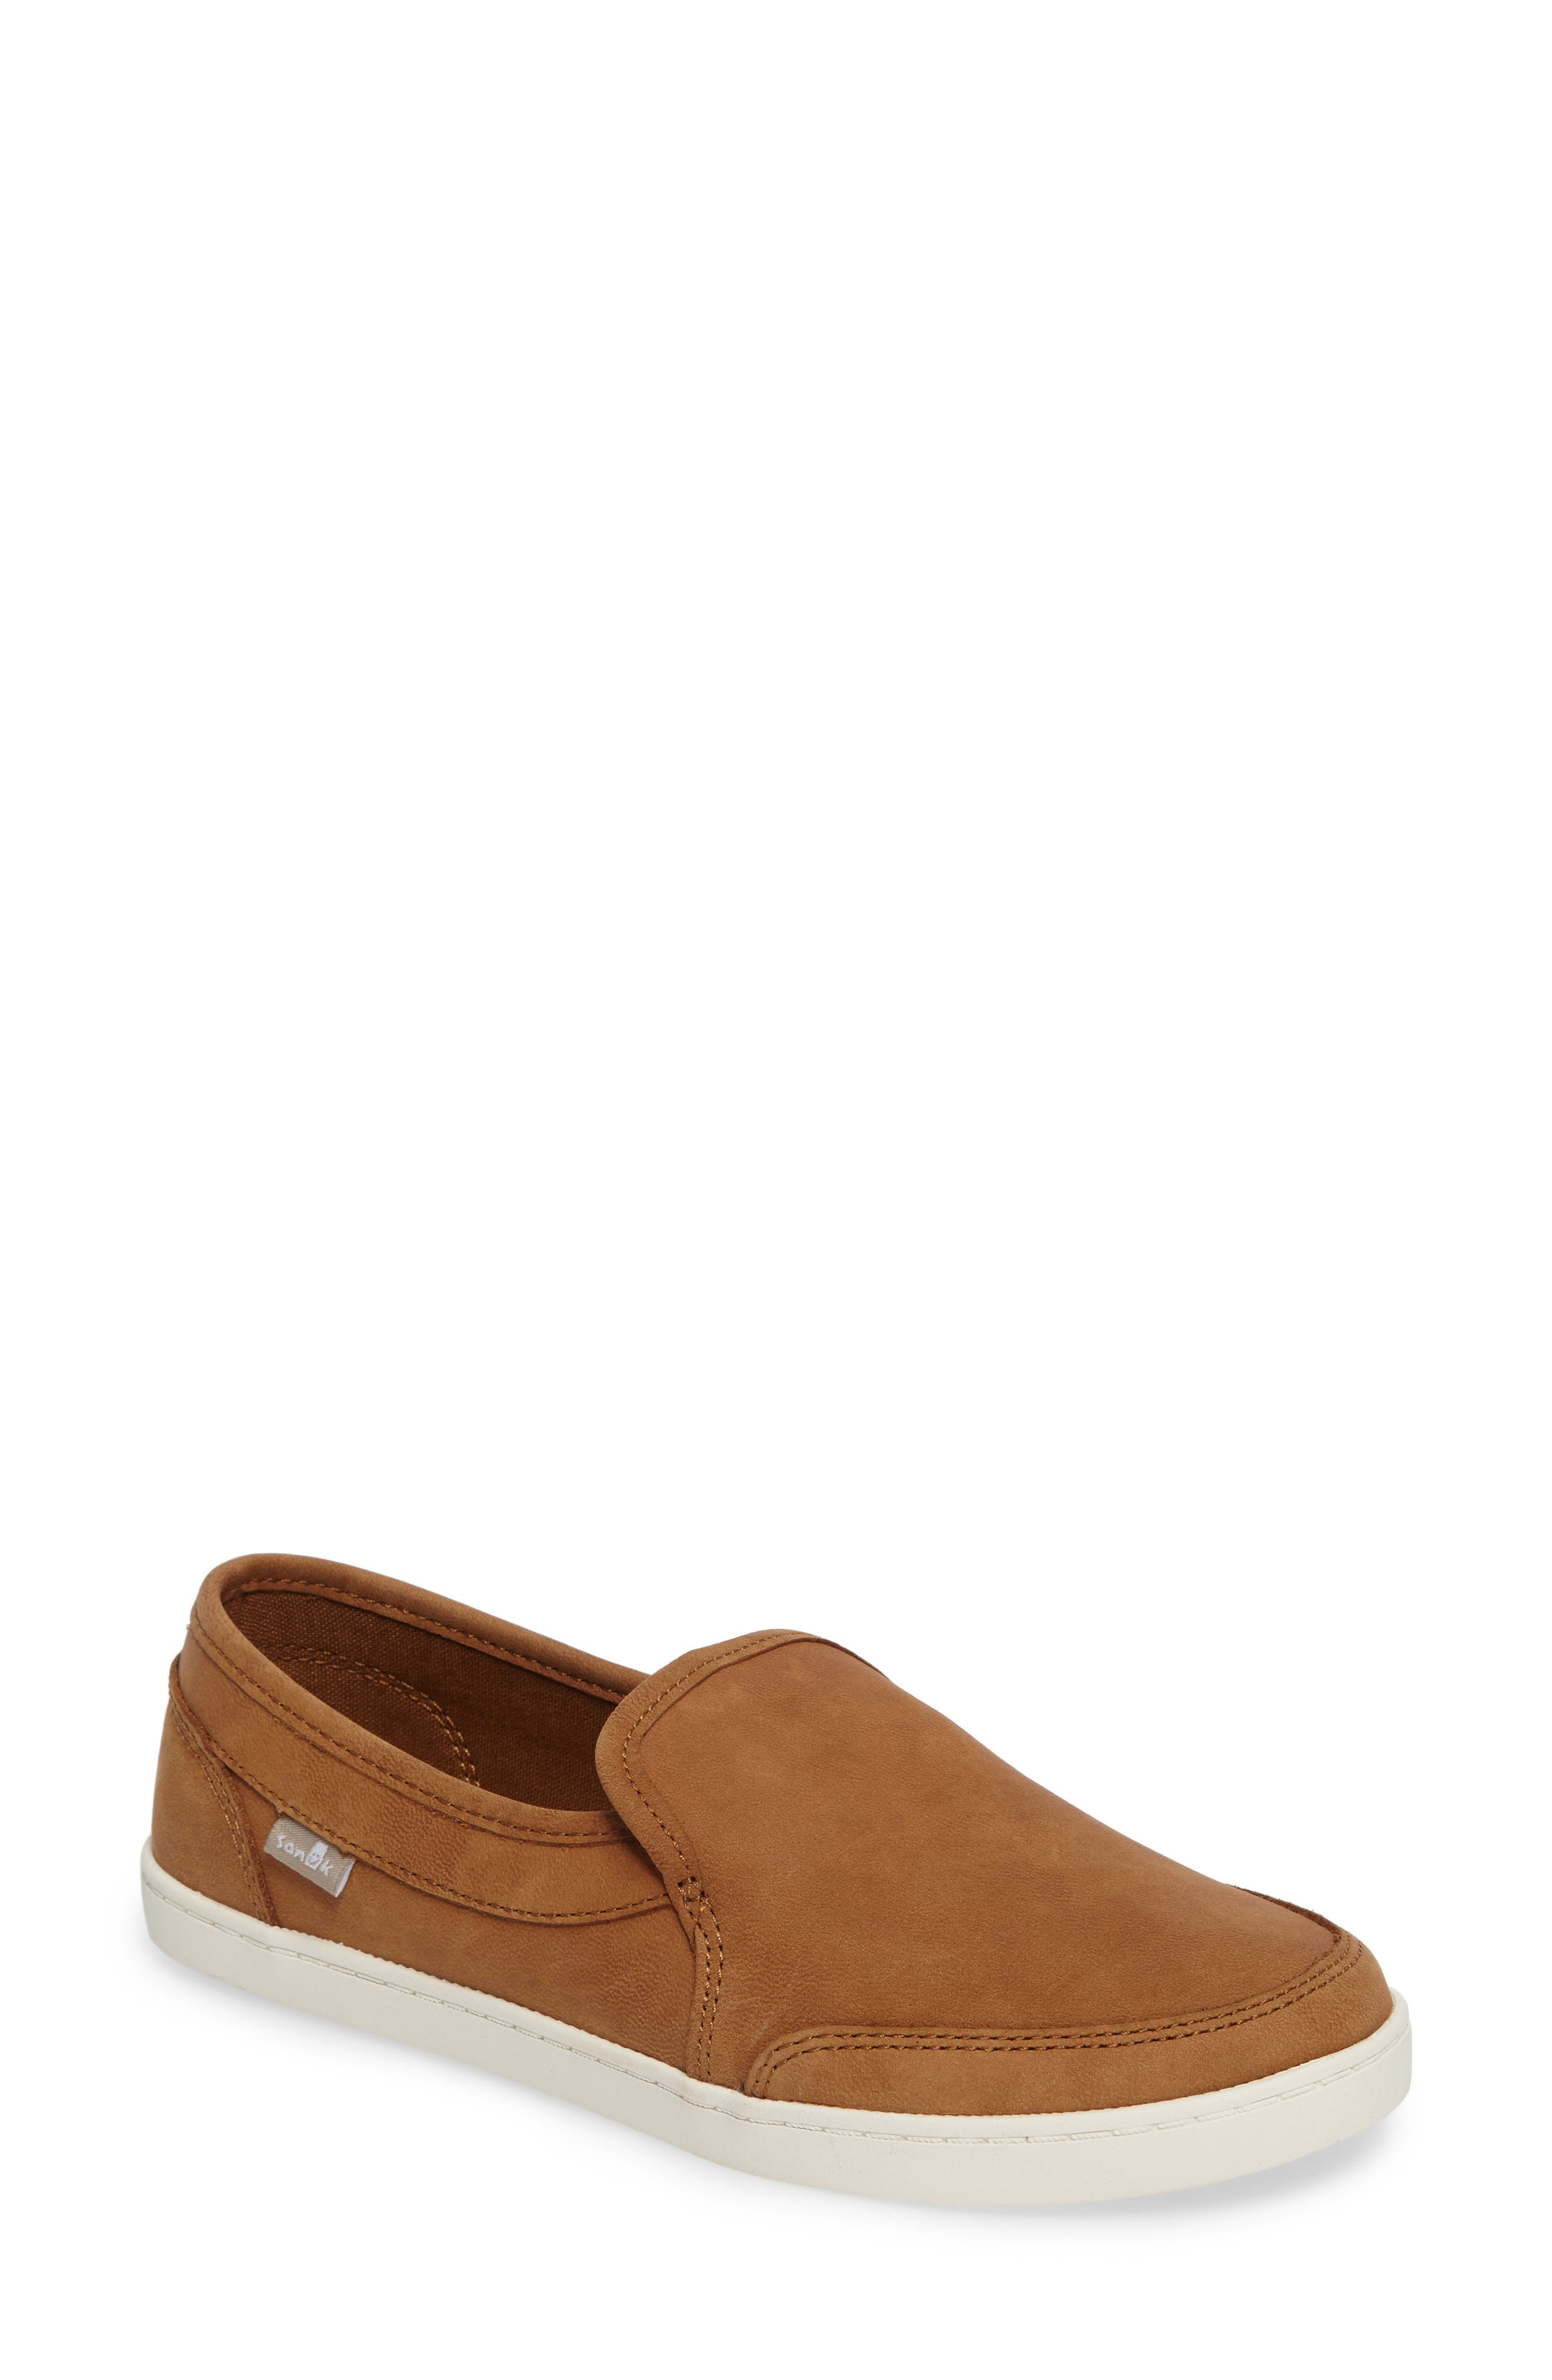 'Pair O Dice' Slip On,                         Main,                         color, Tobacco Brown